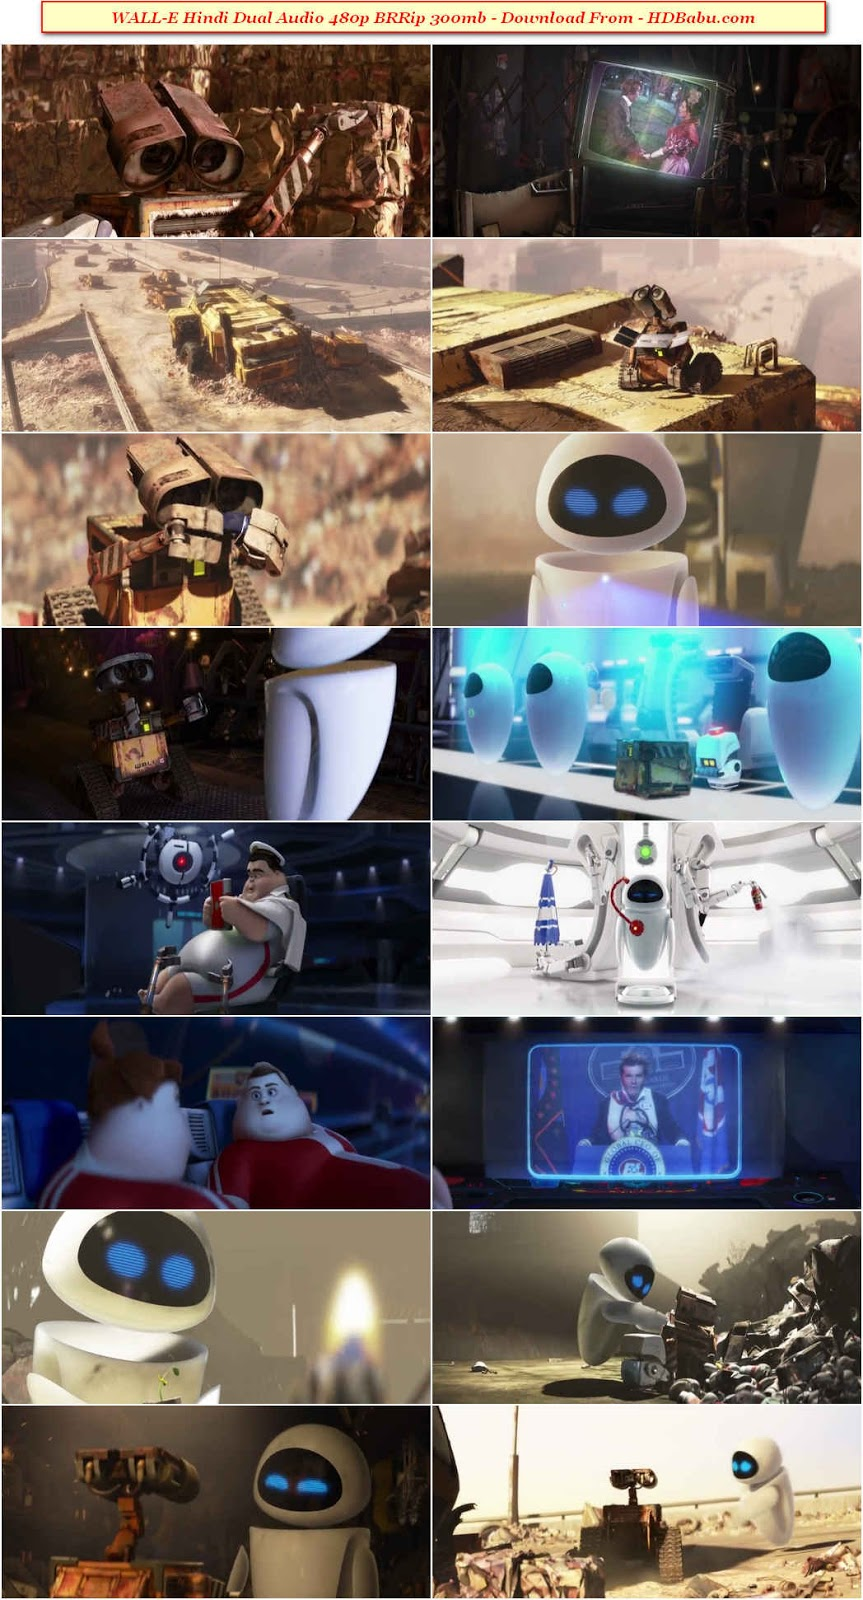 Wall E Dual Audio Movie Download